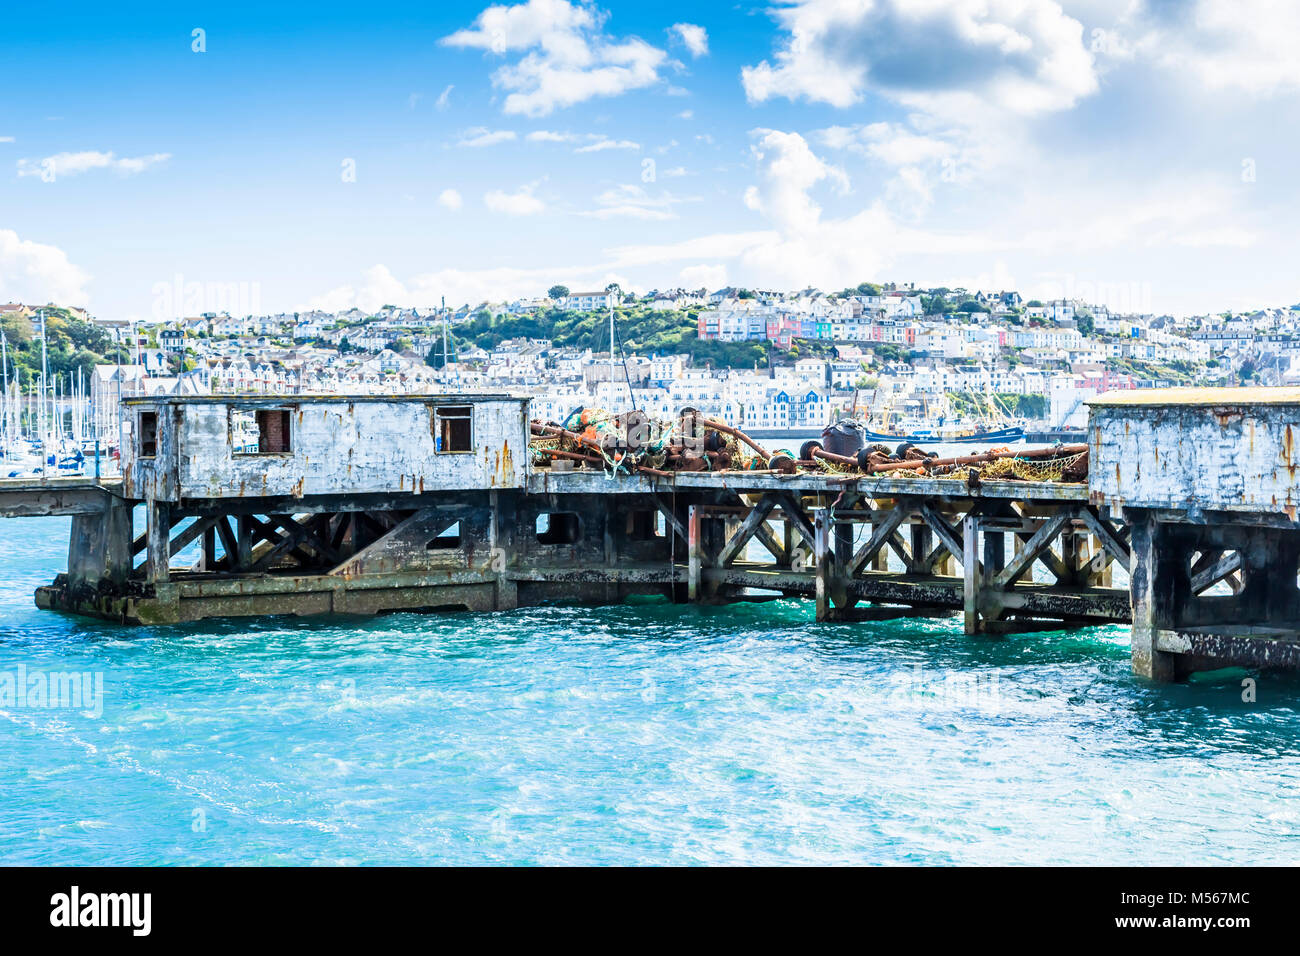 Dilapidated, disused harbour staging in Brixham harbour, South Devon, UK. - Stock Image